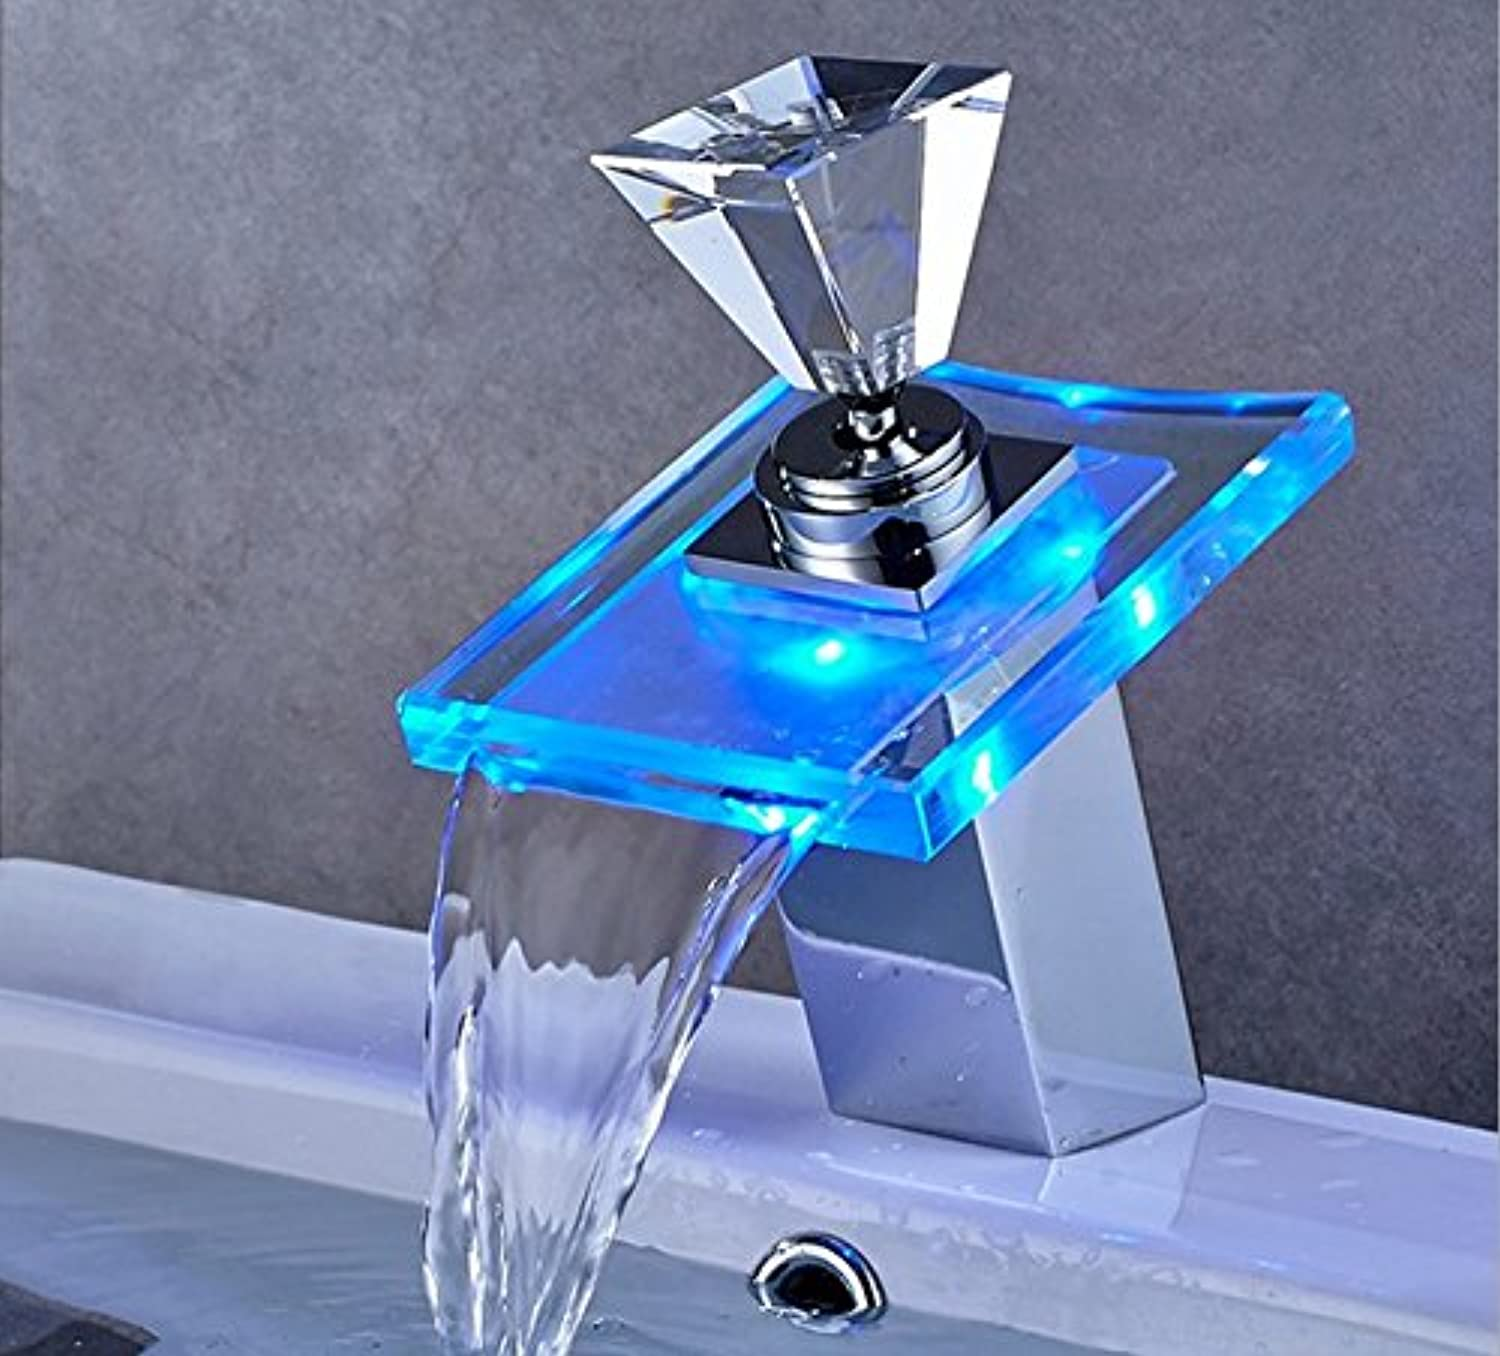 Mangeoo Faucet Led Temperature Controlled Water Faucet, Table Top Basin Glass, Waterfall Hot And Cold Water Mixing Faucet